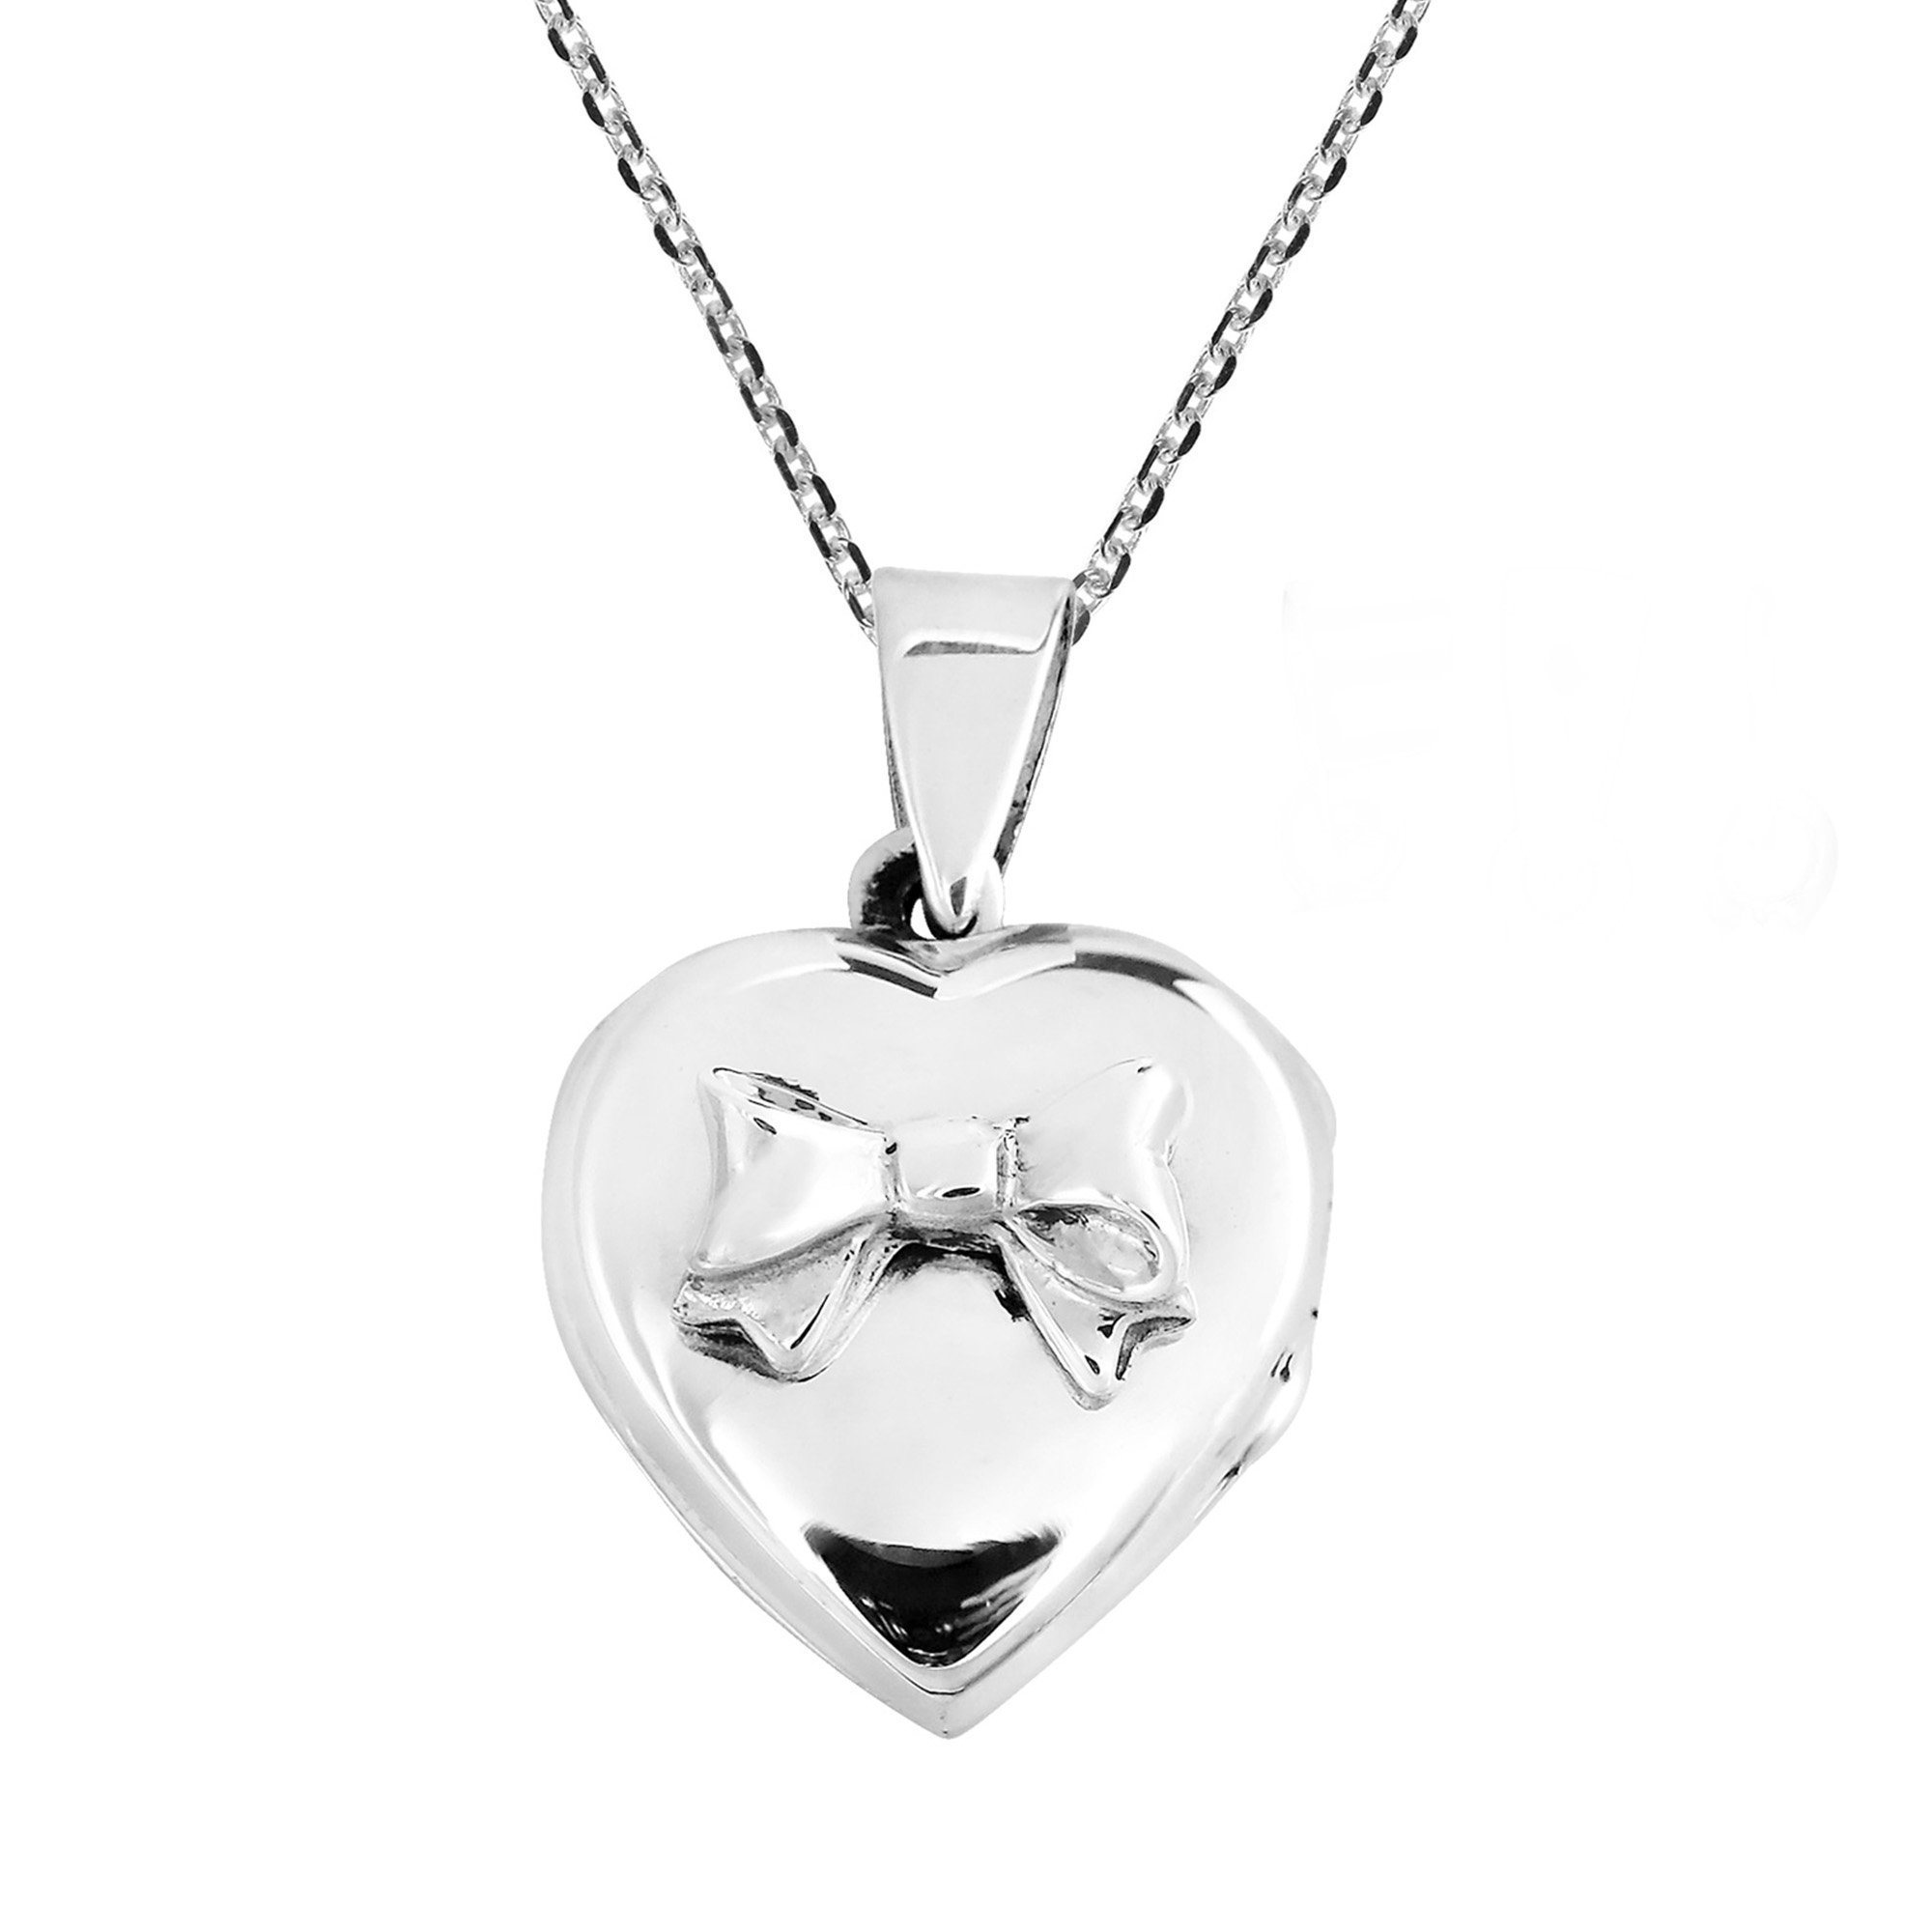 Adorable Valentine Bow on Heart Locket Pendant .925 Sterling Silver .925 Necklace by AeraVida